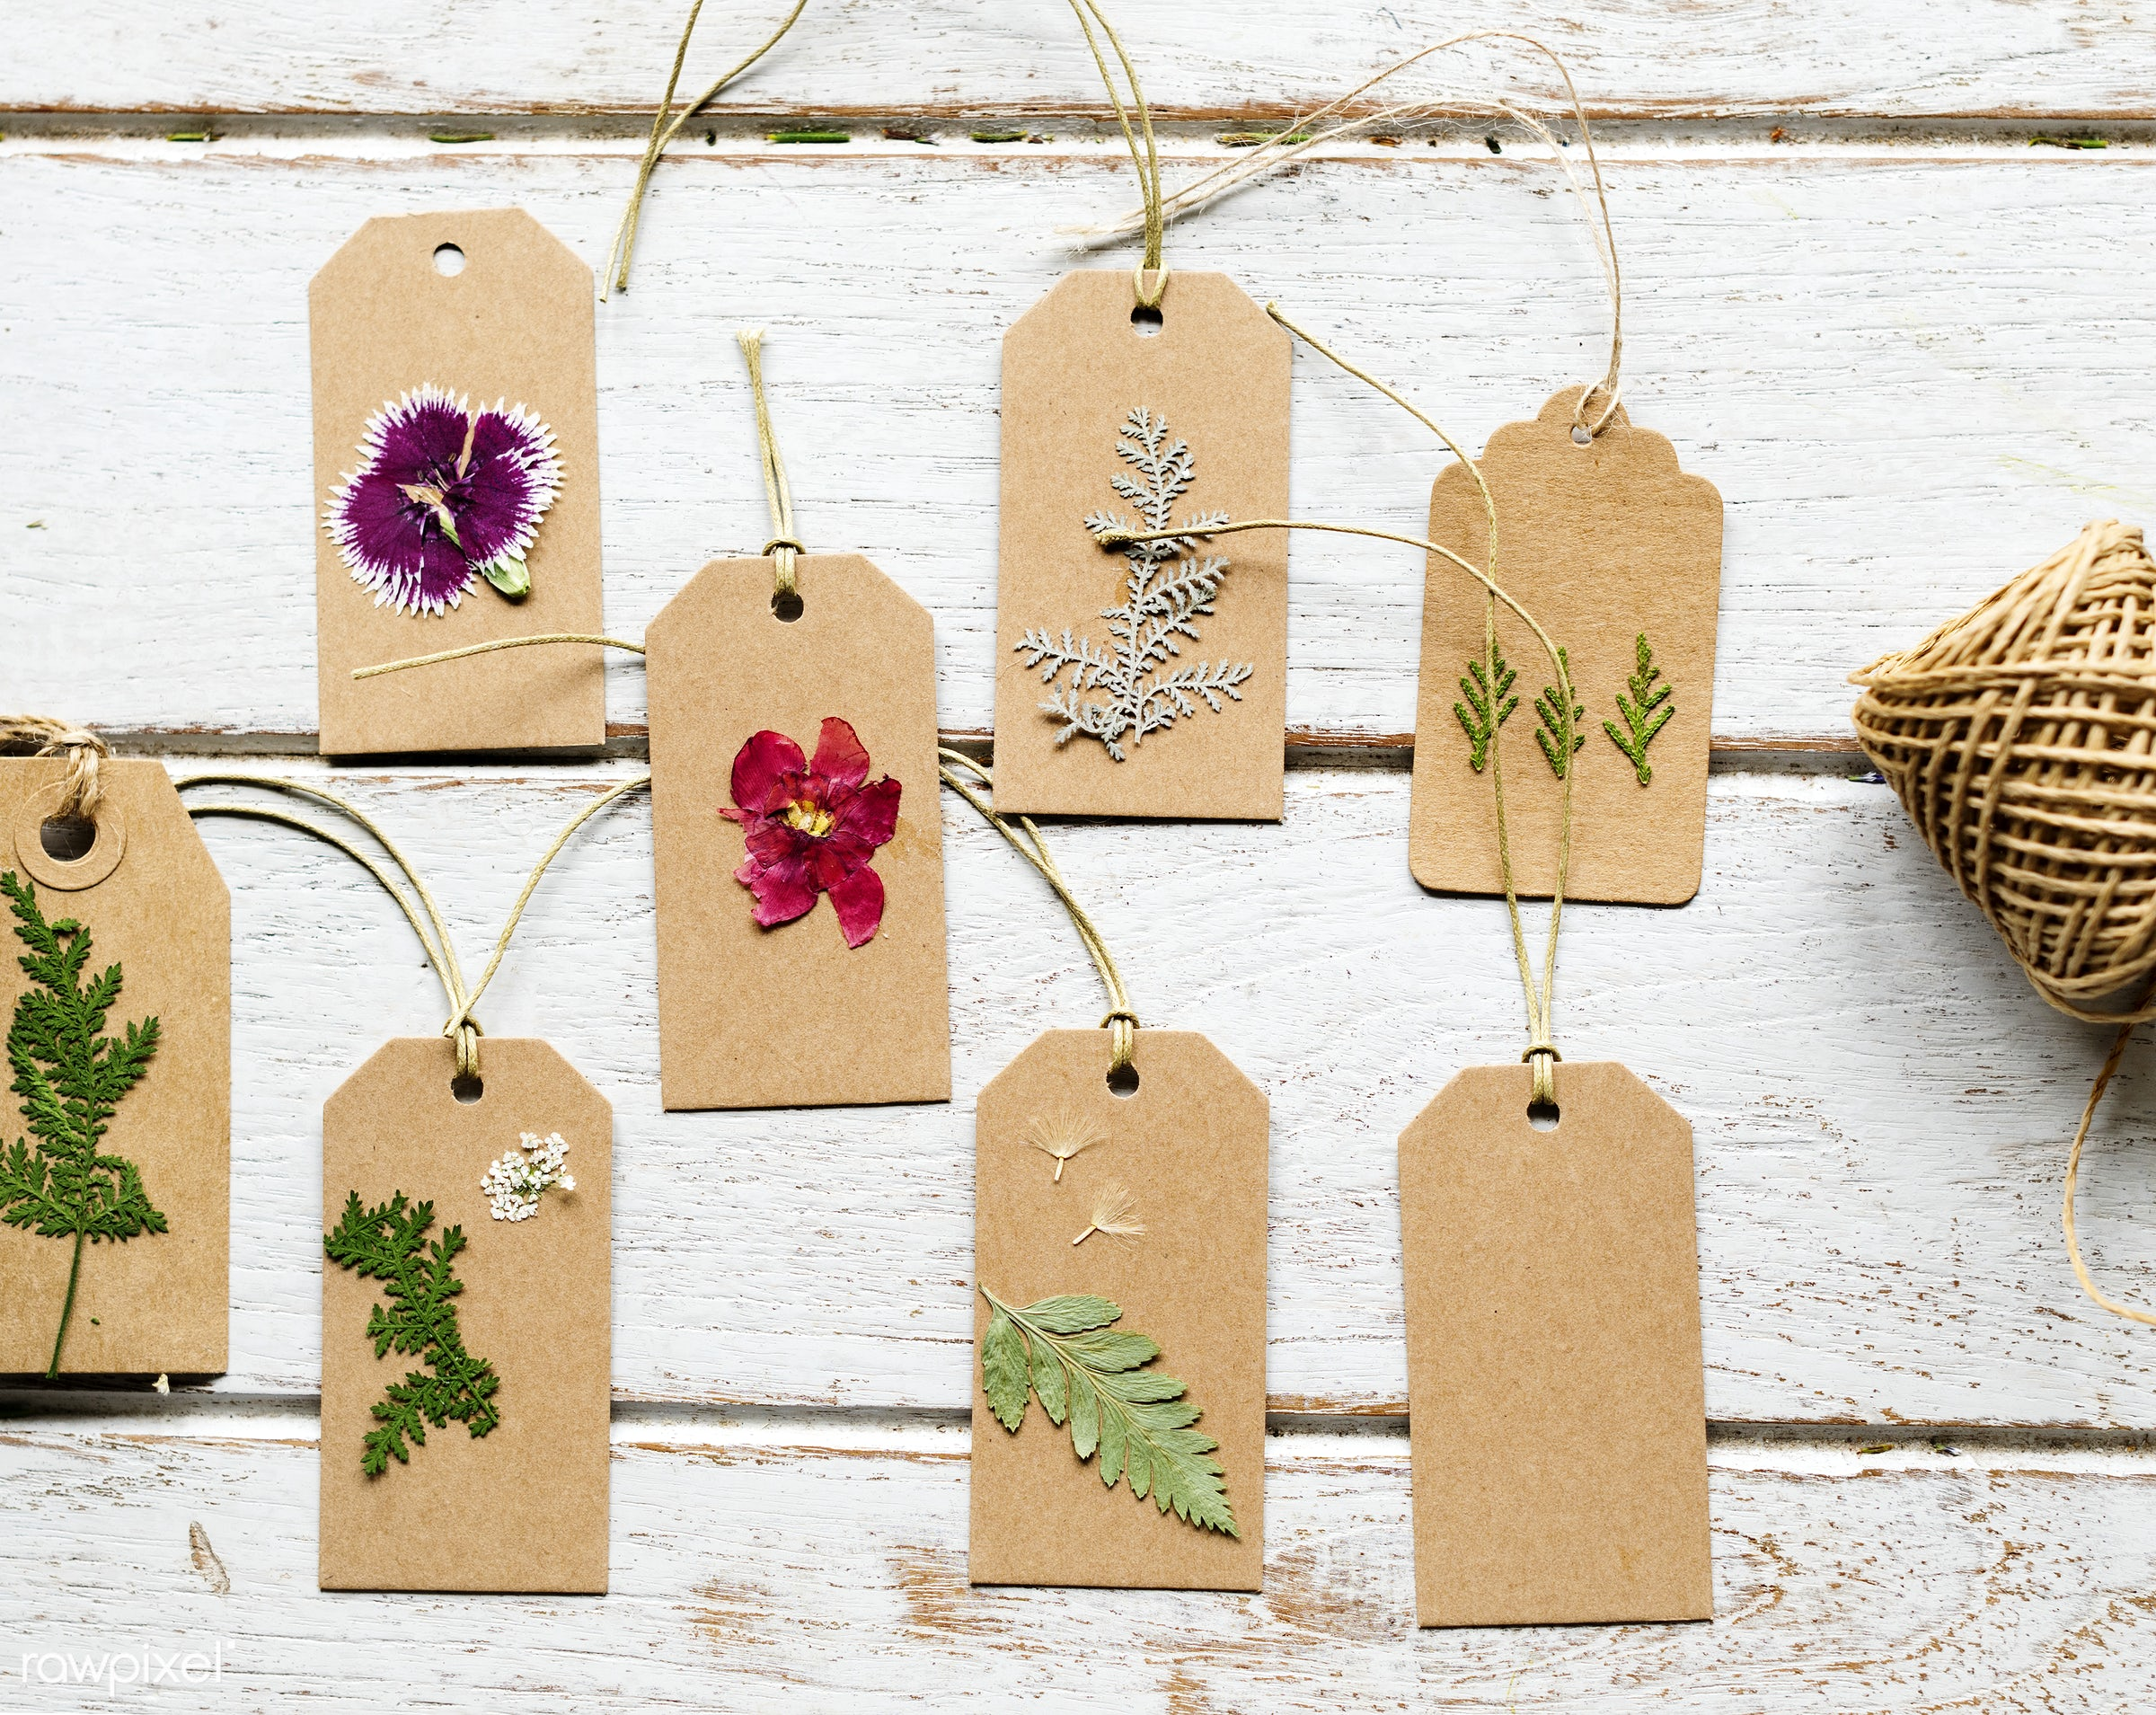 festive, nobody, detail, decorative, colorful, events, handicraft, paper, tag, made, plants, leaf, leaves, spring, blossom,...